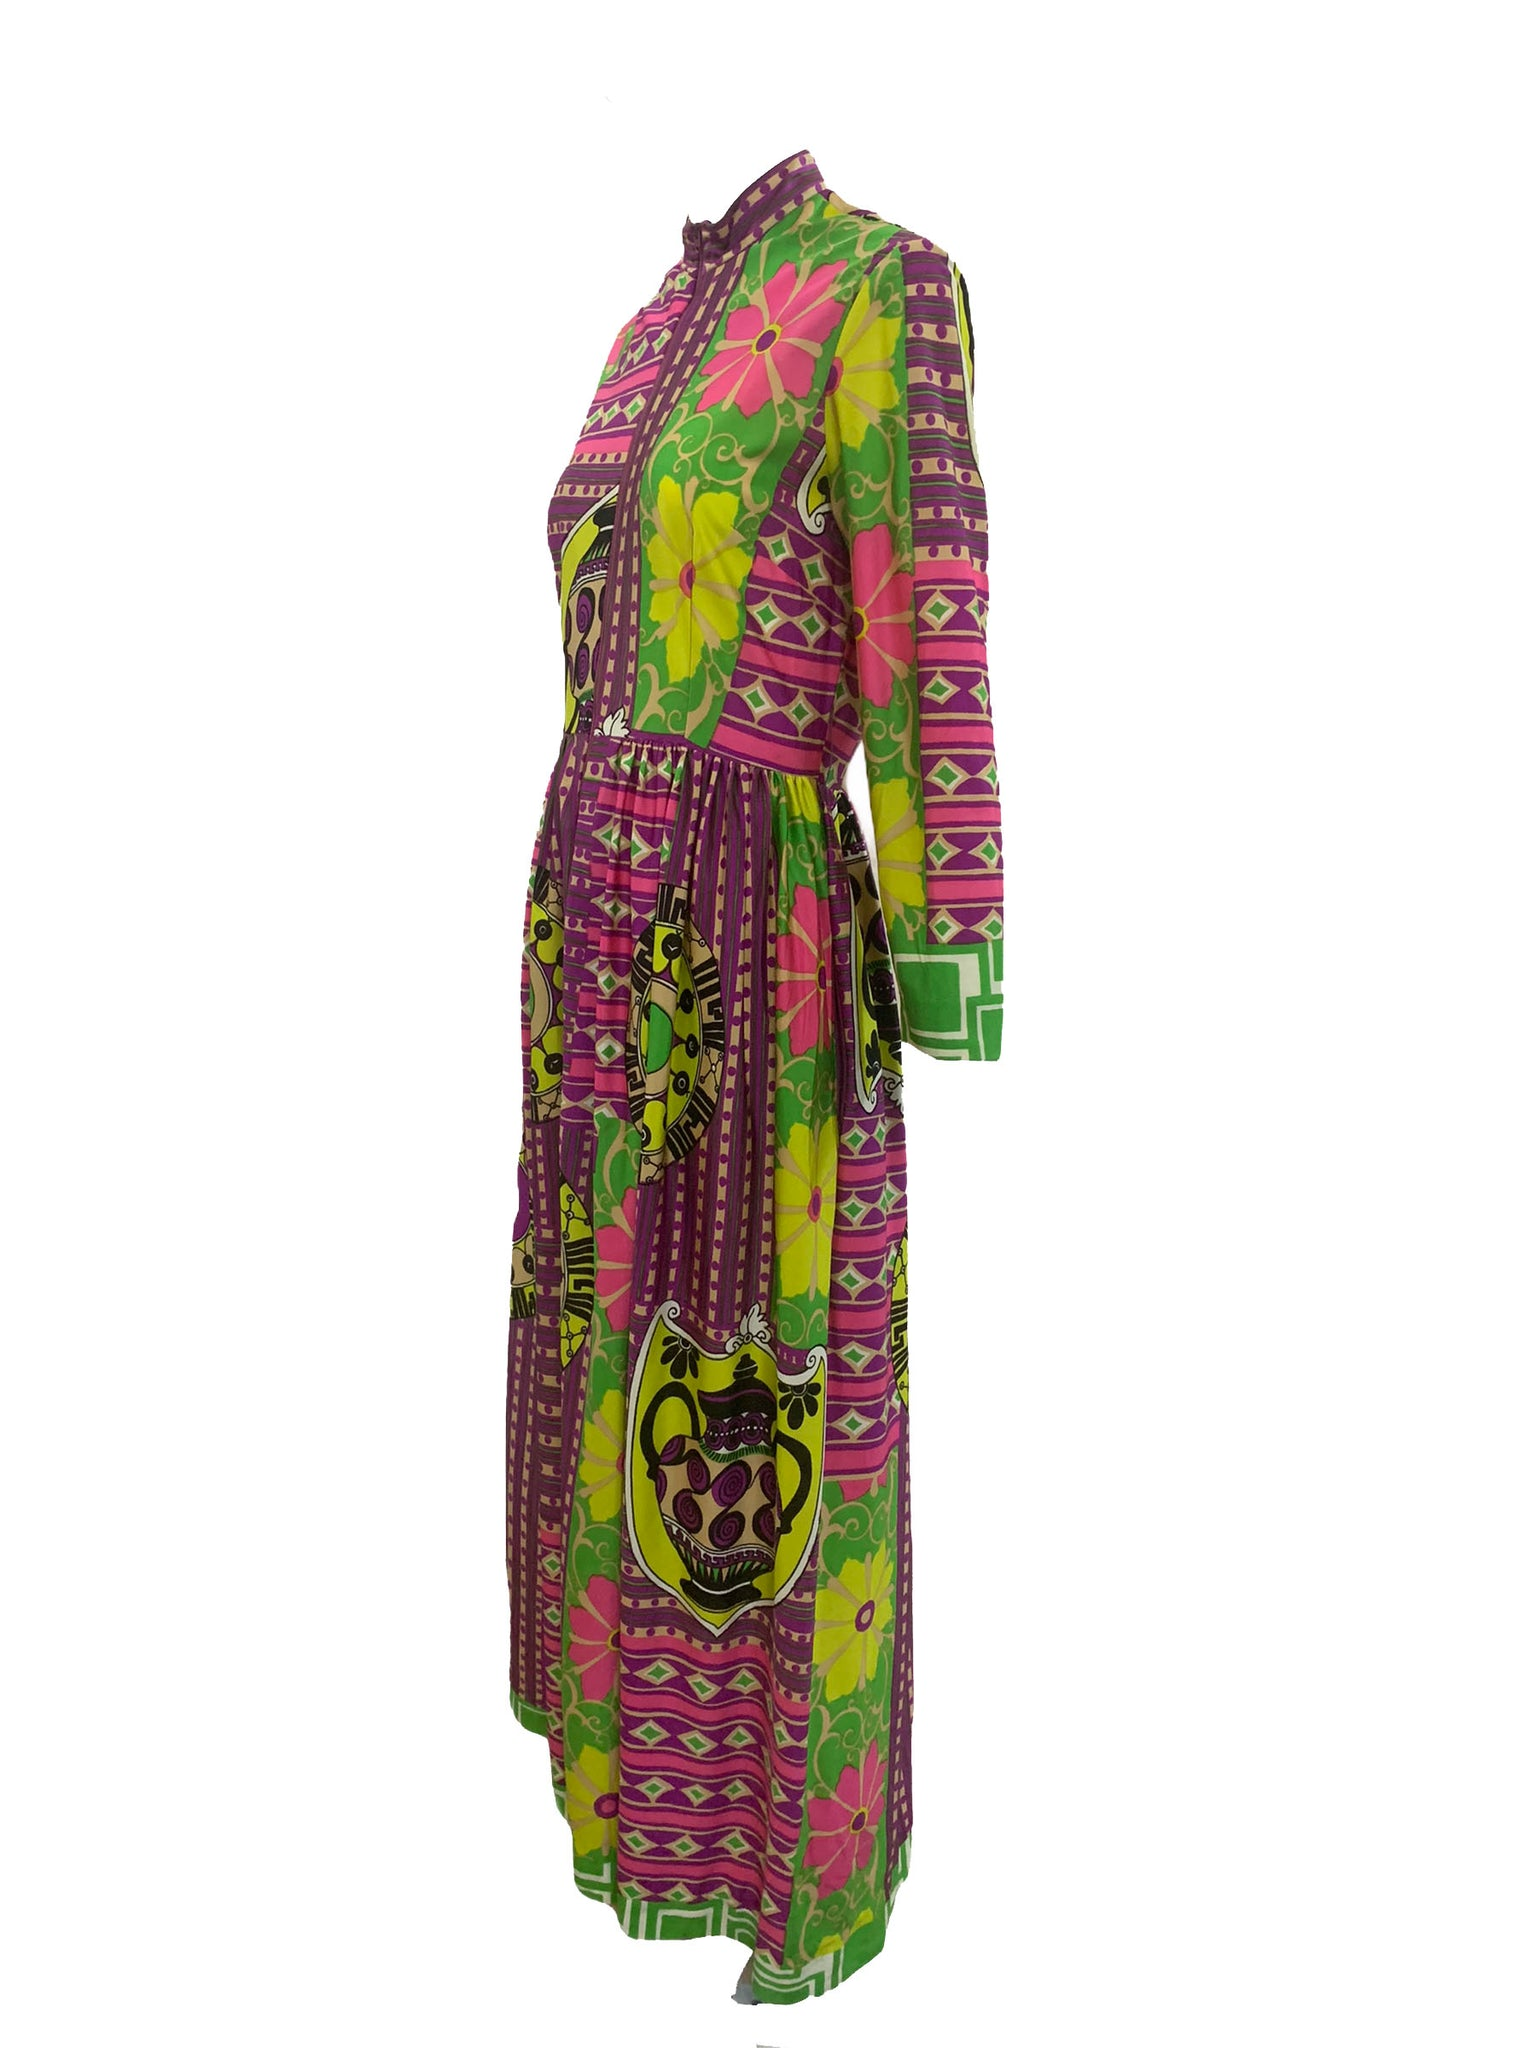 Bernice Lang 70s Psychedelic Maxi Dress SIDE 3 of 6